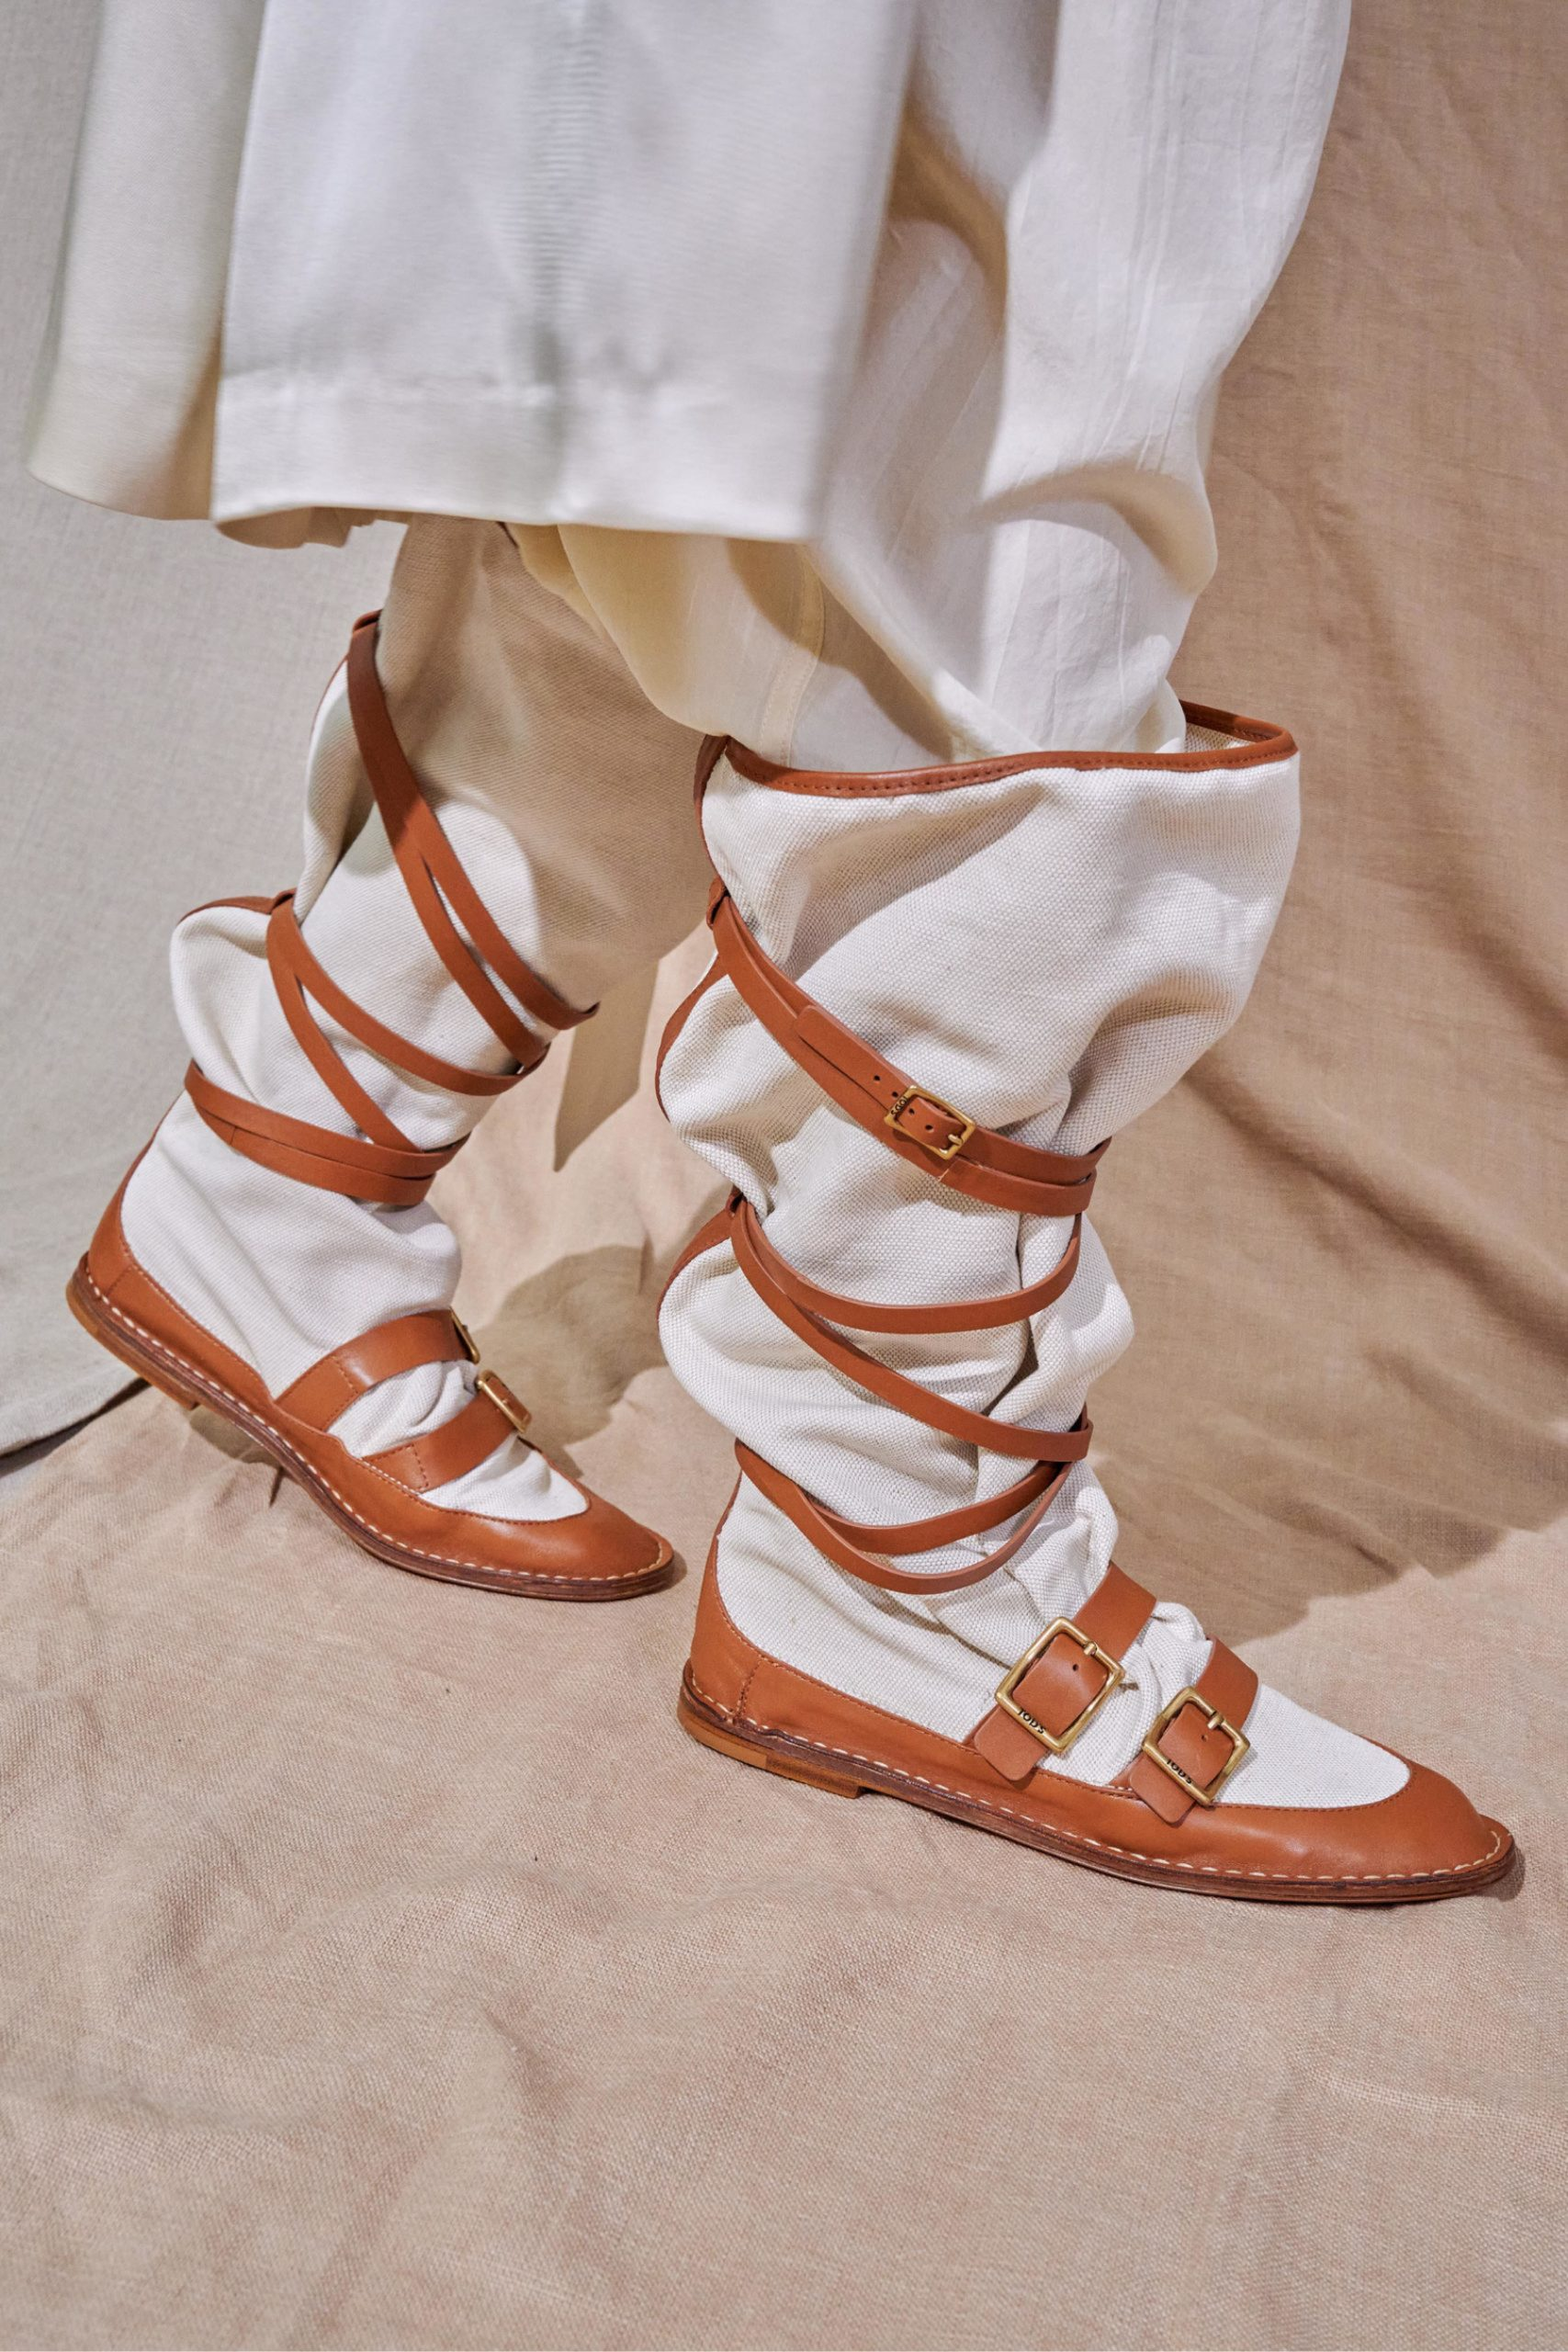 Top 50 Shoes Of Spring 2021 RTW Fashion Shows